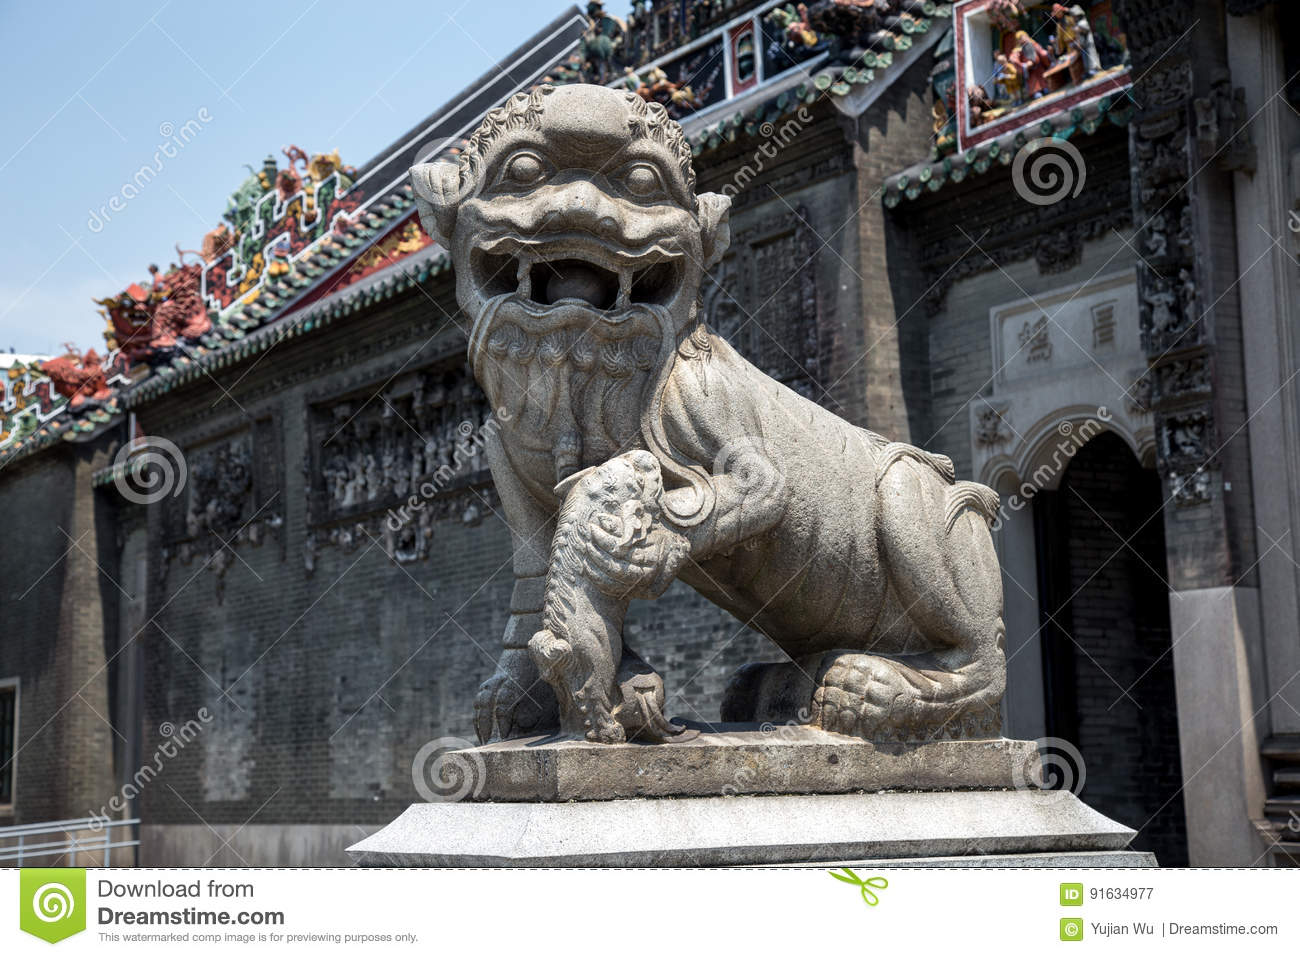 The famous tourist attractions in Guangzhou city China Chen ancestral temple, Qianmen granite carved lions.